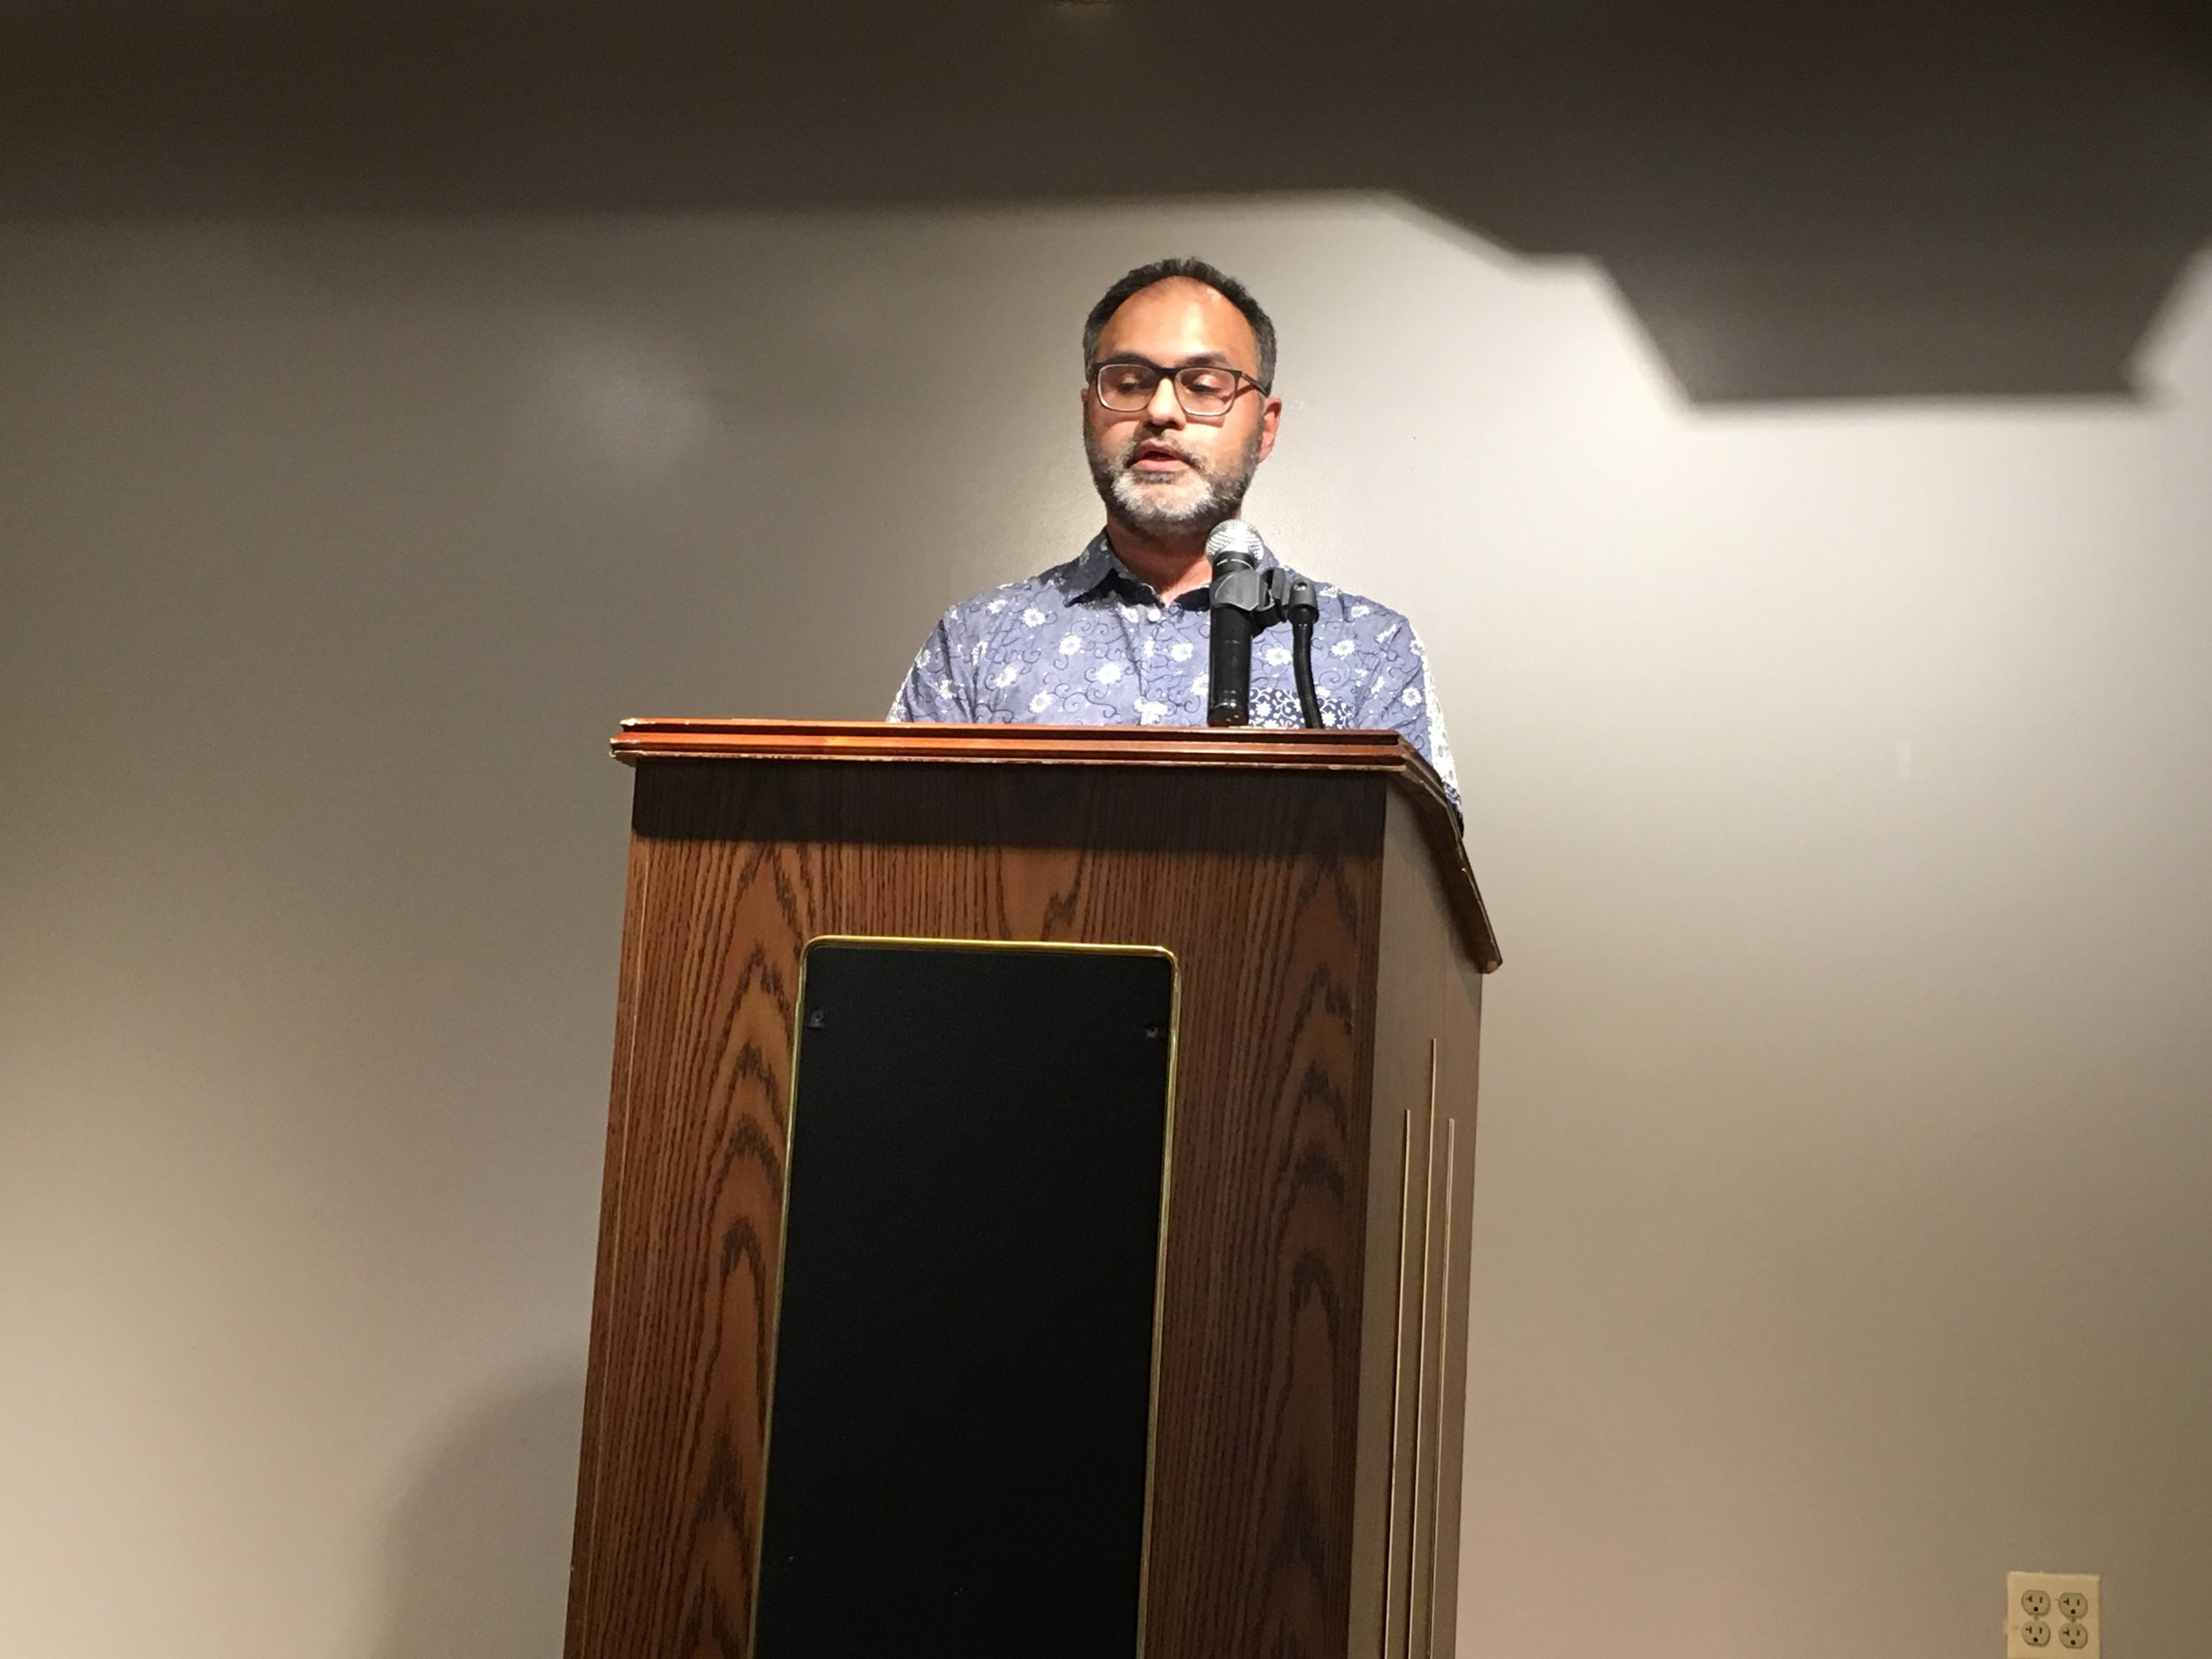 Faisal Mohyuddin introduces the reading he organized, On Migration, Home, and the Search for Belonging at Gibbs-Morrison Cultural Center.